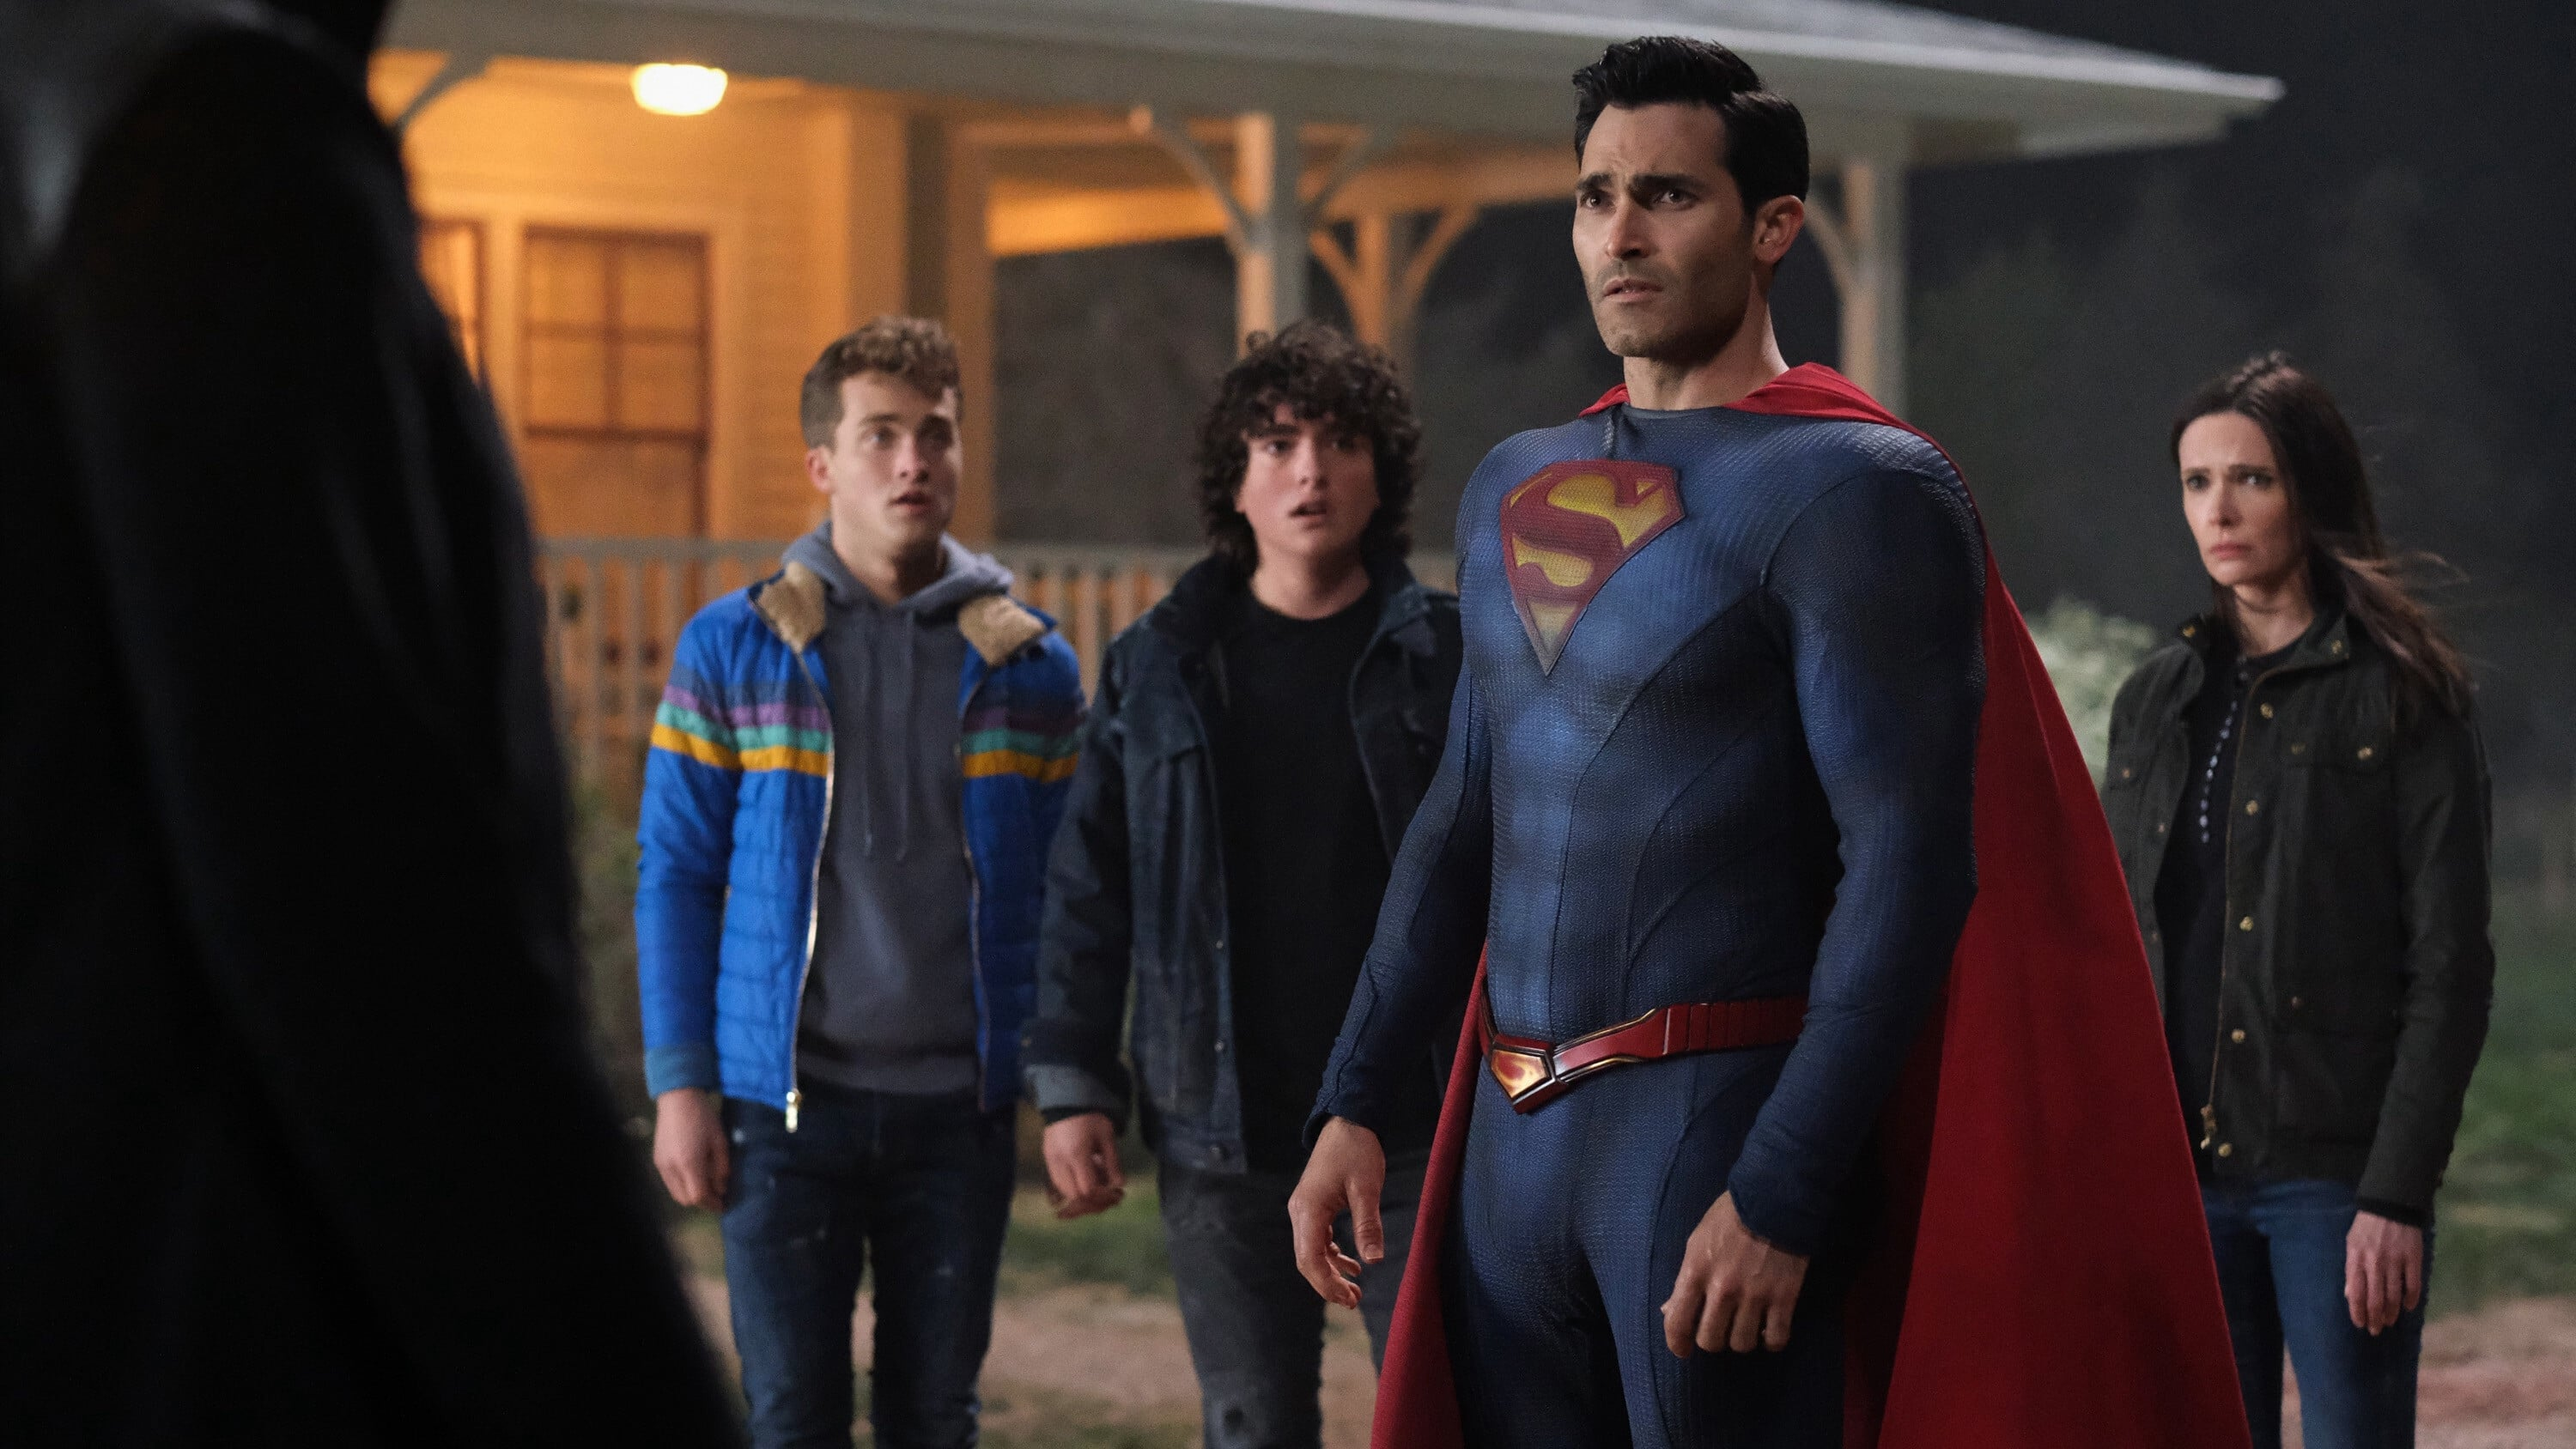 Superman & Lois - Season 1 Episode 11 : A Brief Reminiscence In-Between Cataclysmic Events